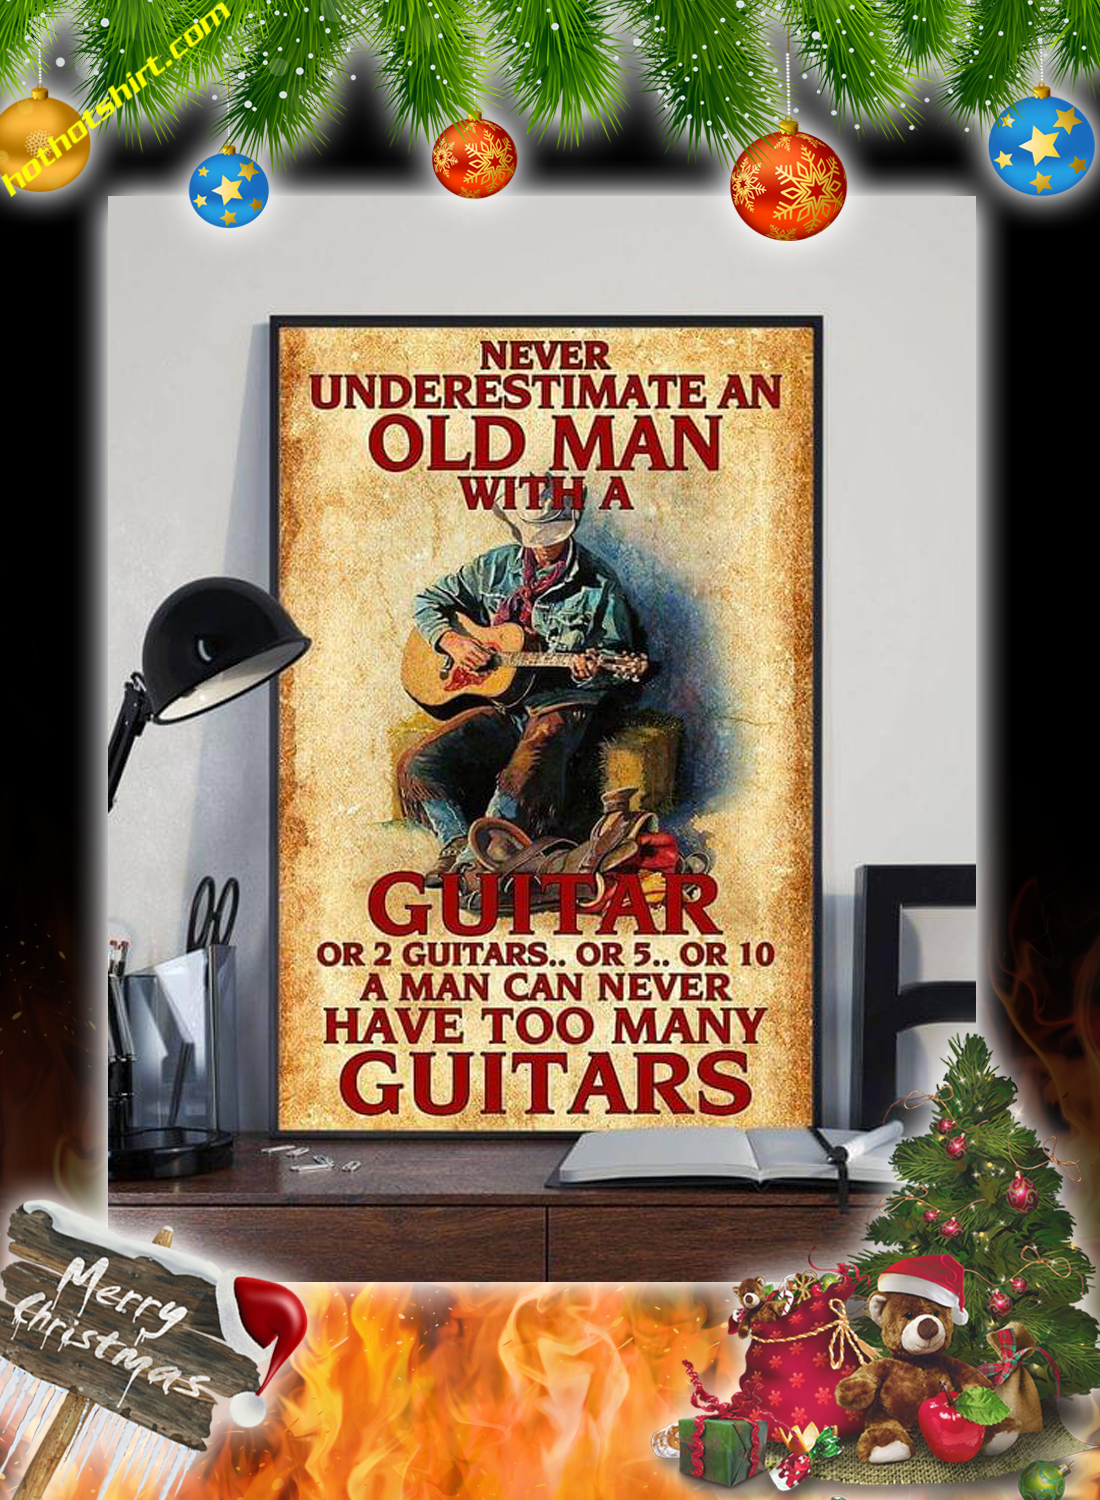 Never underestimate an old man with a guitar or 2 guitars poster 1